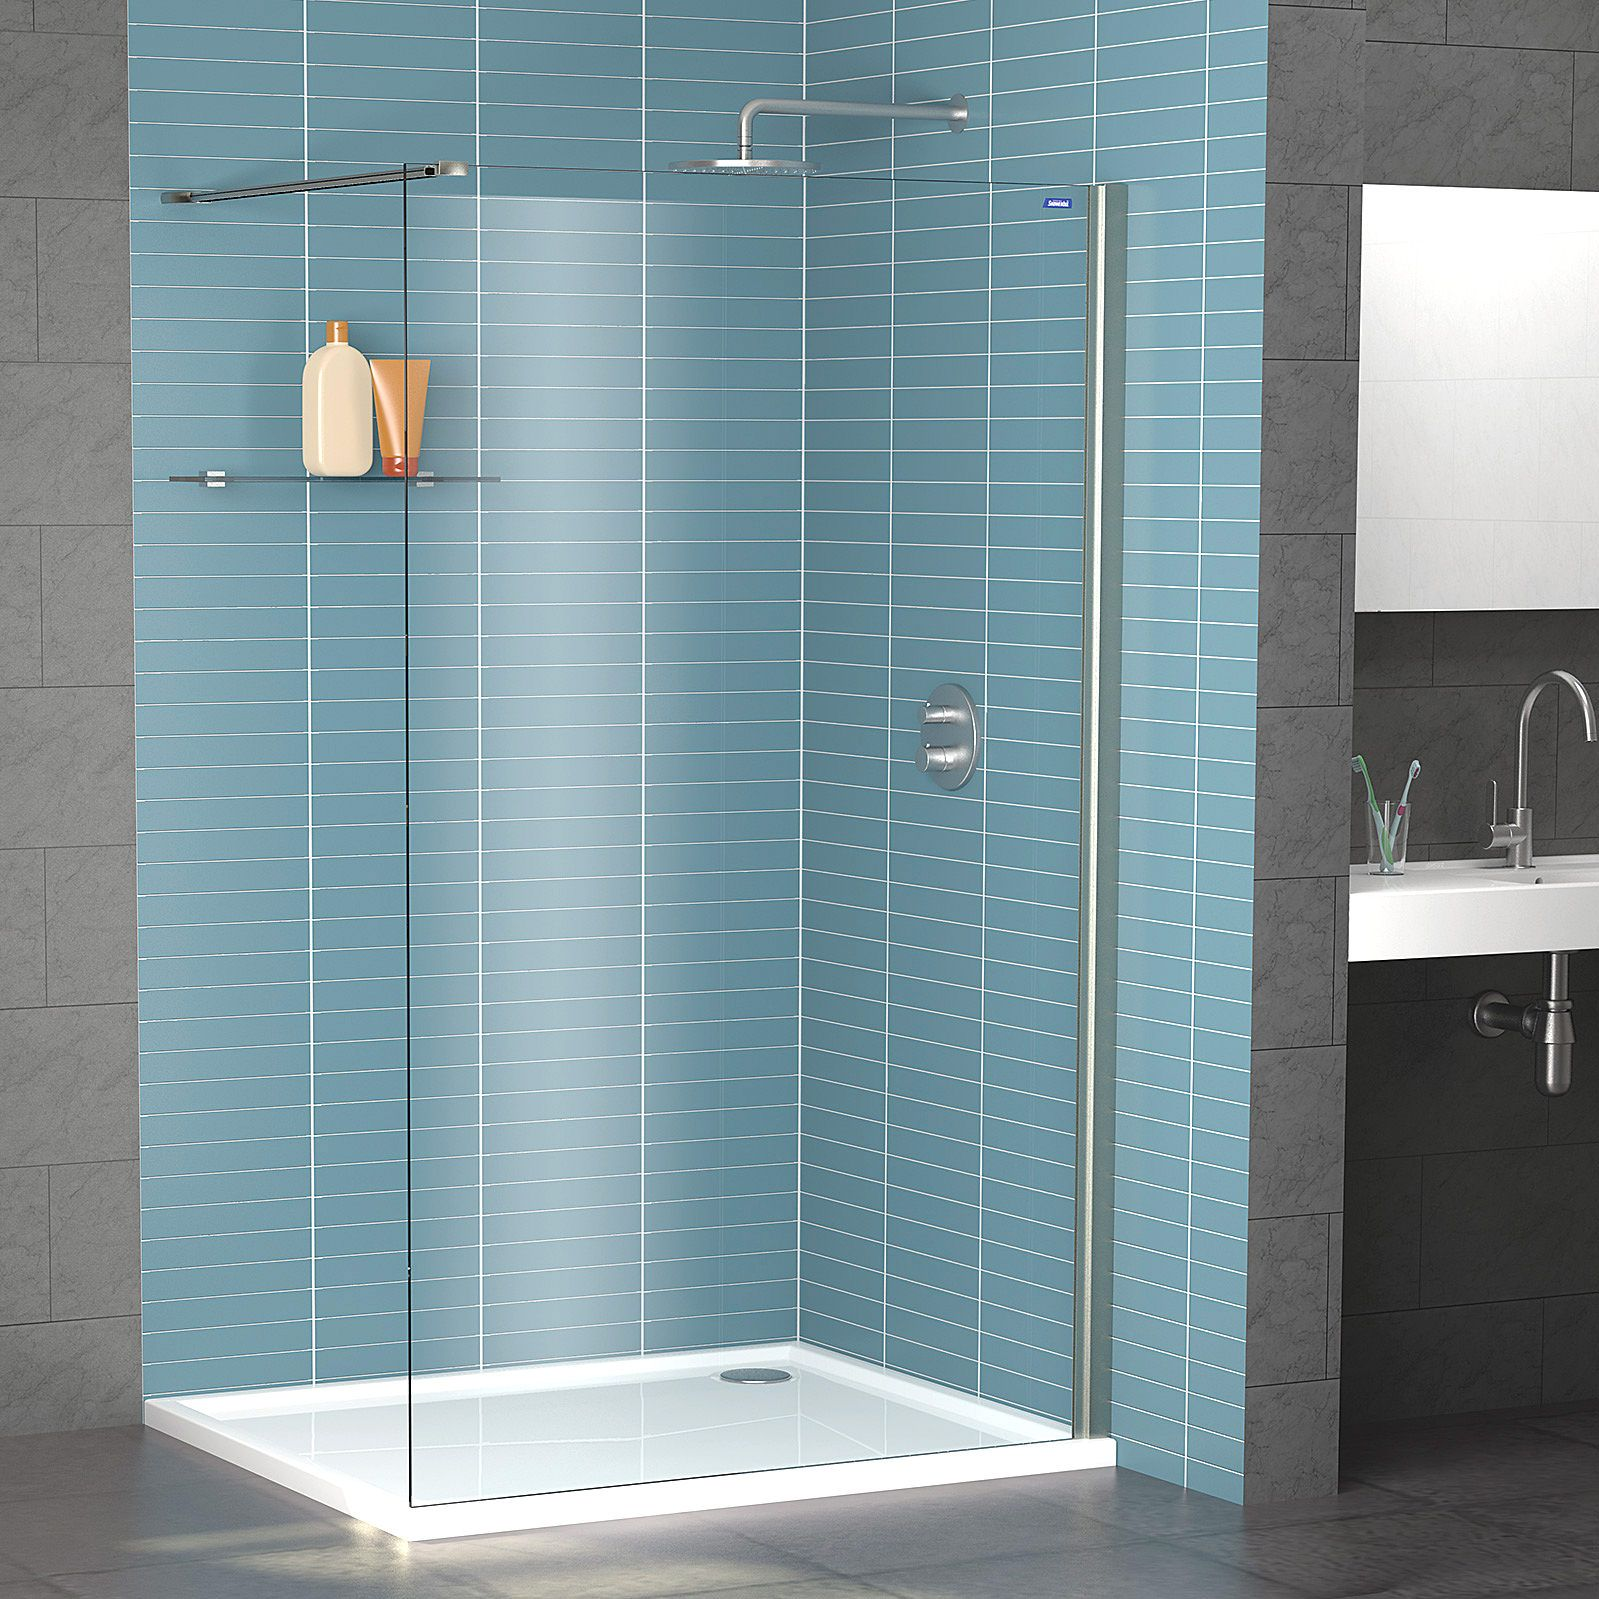 Lot 22 - Shower Lux - Legacy Wet Room Panel - 1900x900 - Platnium Silver - New and Boxed.